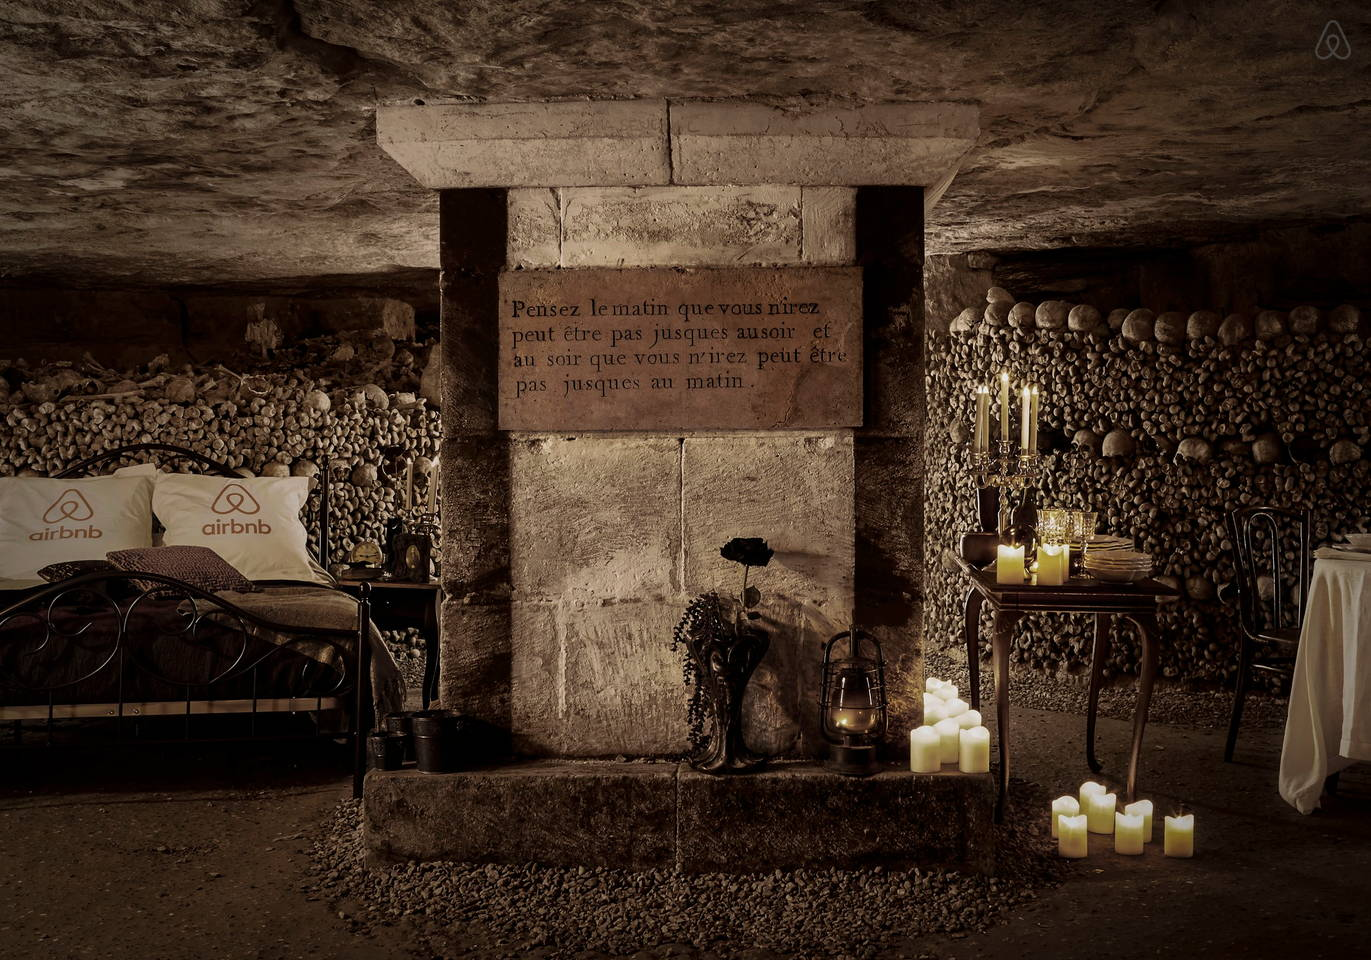 Paris Catacomb